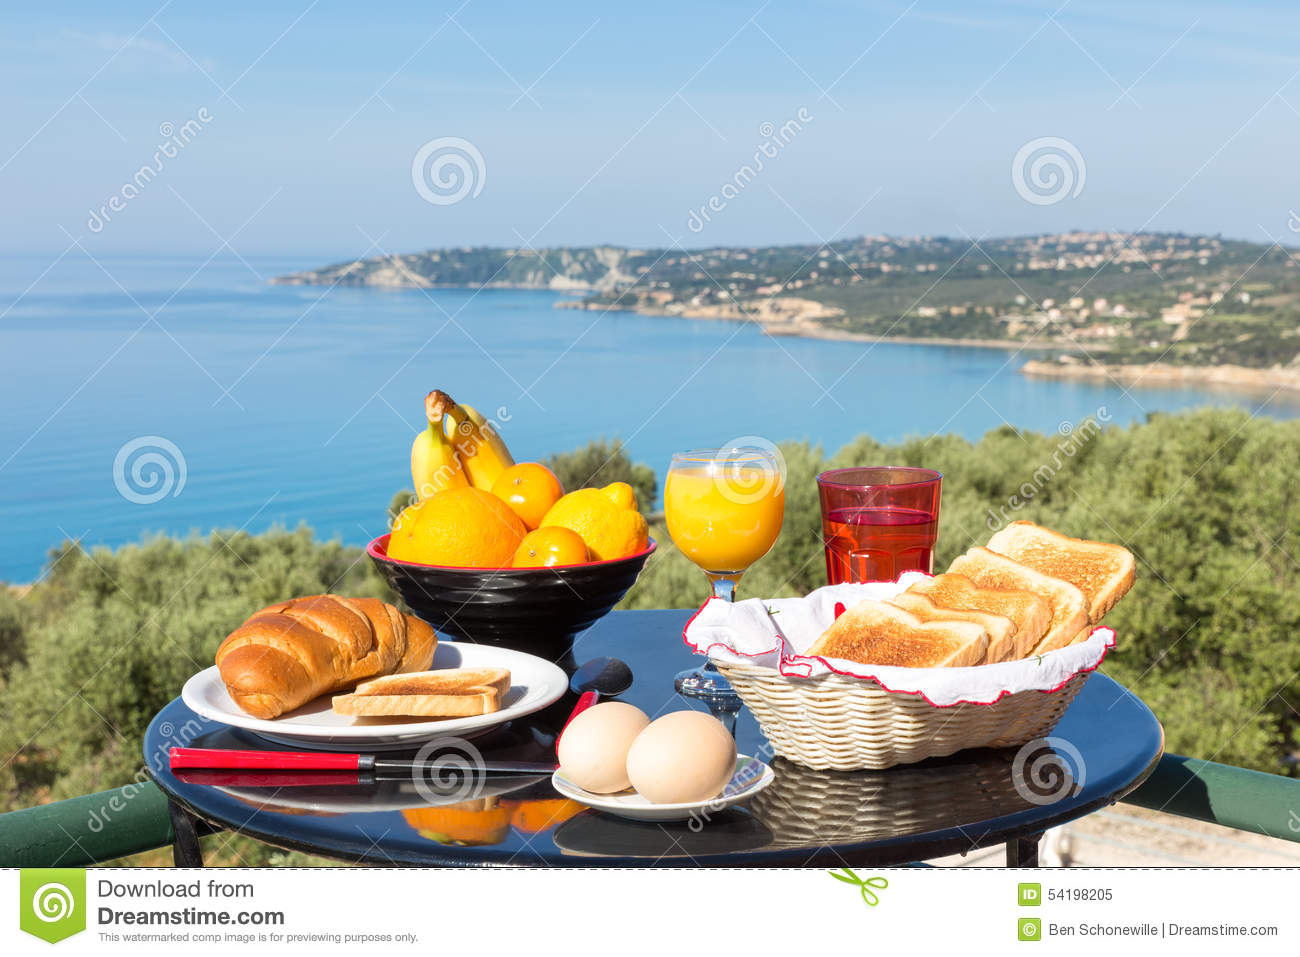 Table with food and drinks in front of blue sea and beach